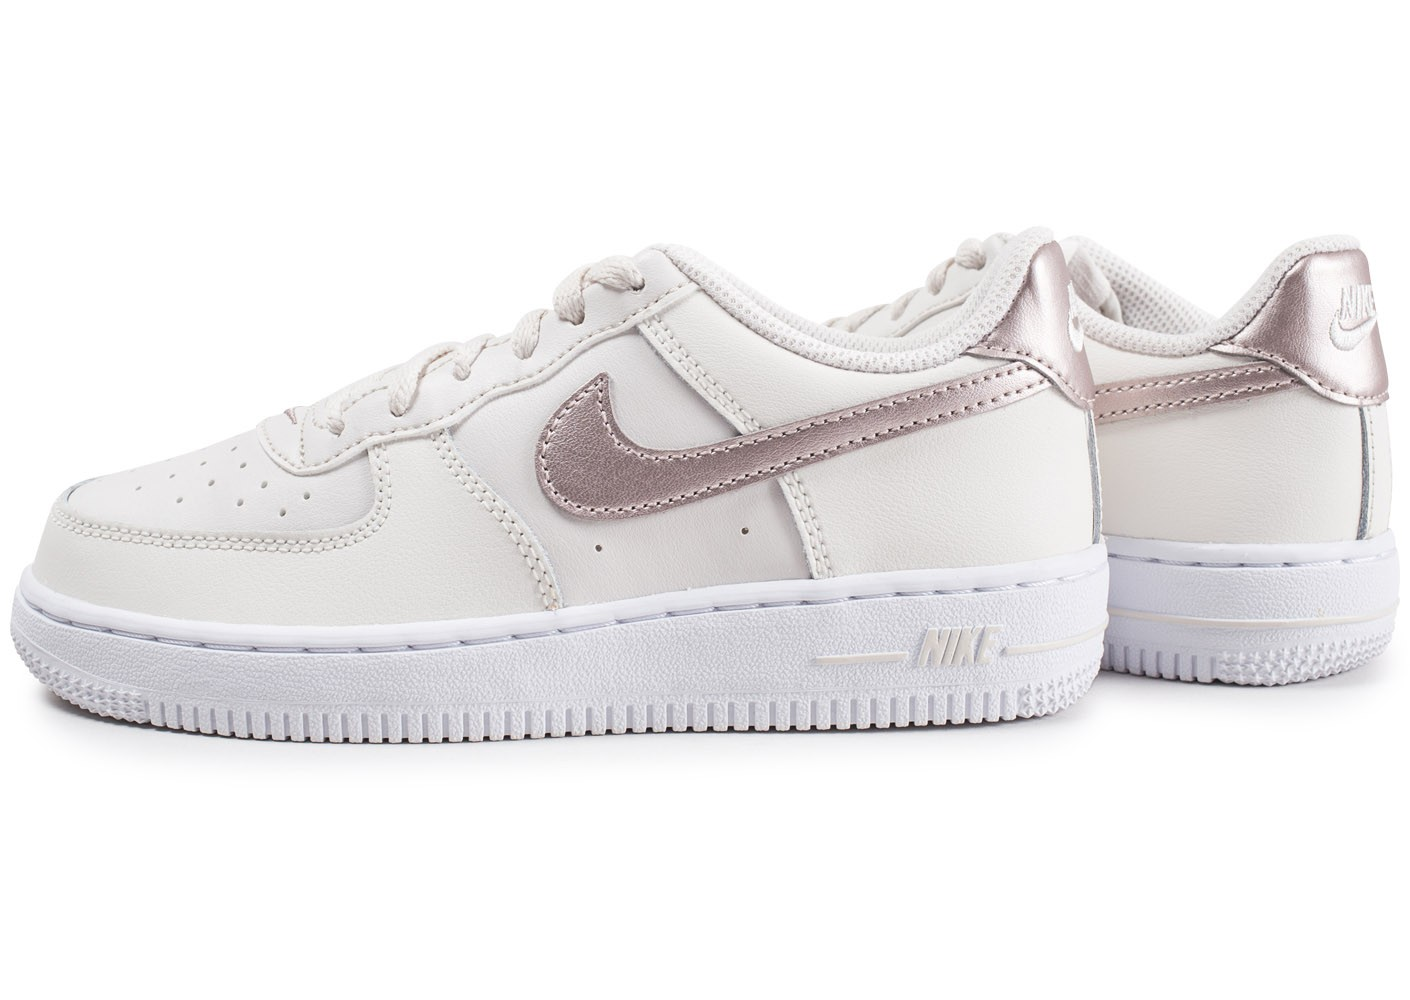 Nike Air Force 1 Low blanc or rose enfant - Chaussures ...